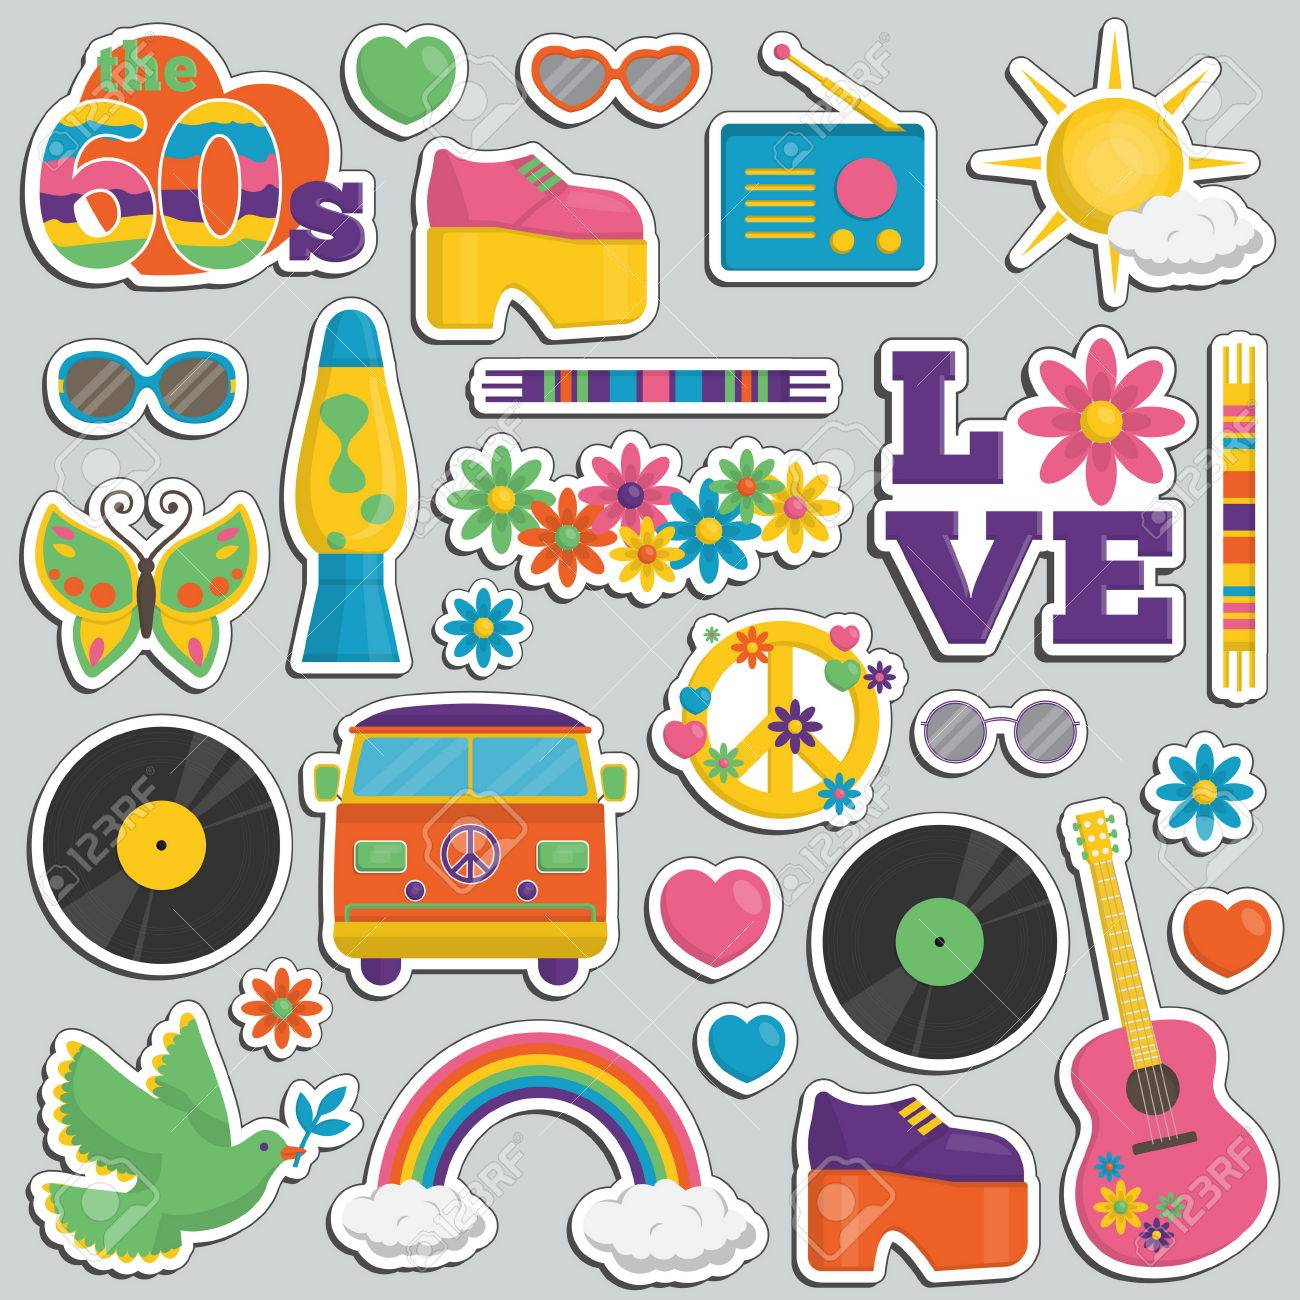 Collection of vintage retro 1960s hippie style sticker patches collection of vintage retro 1960s hippie style sticker patches that symbolize the 60s decade fashion accessories buycottarizona Choice Image